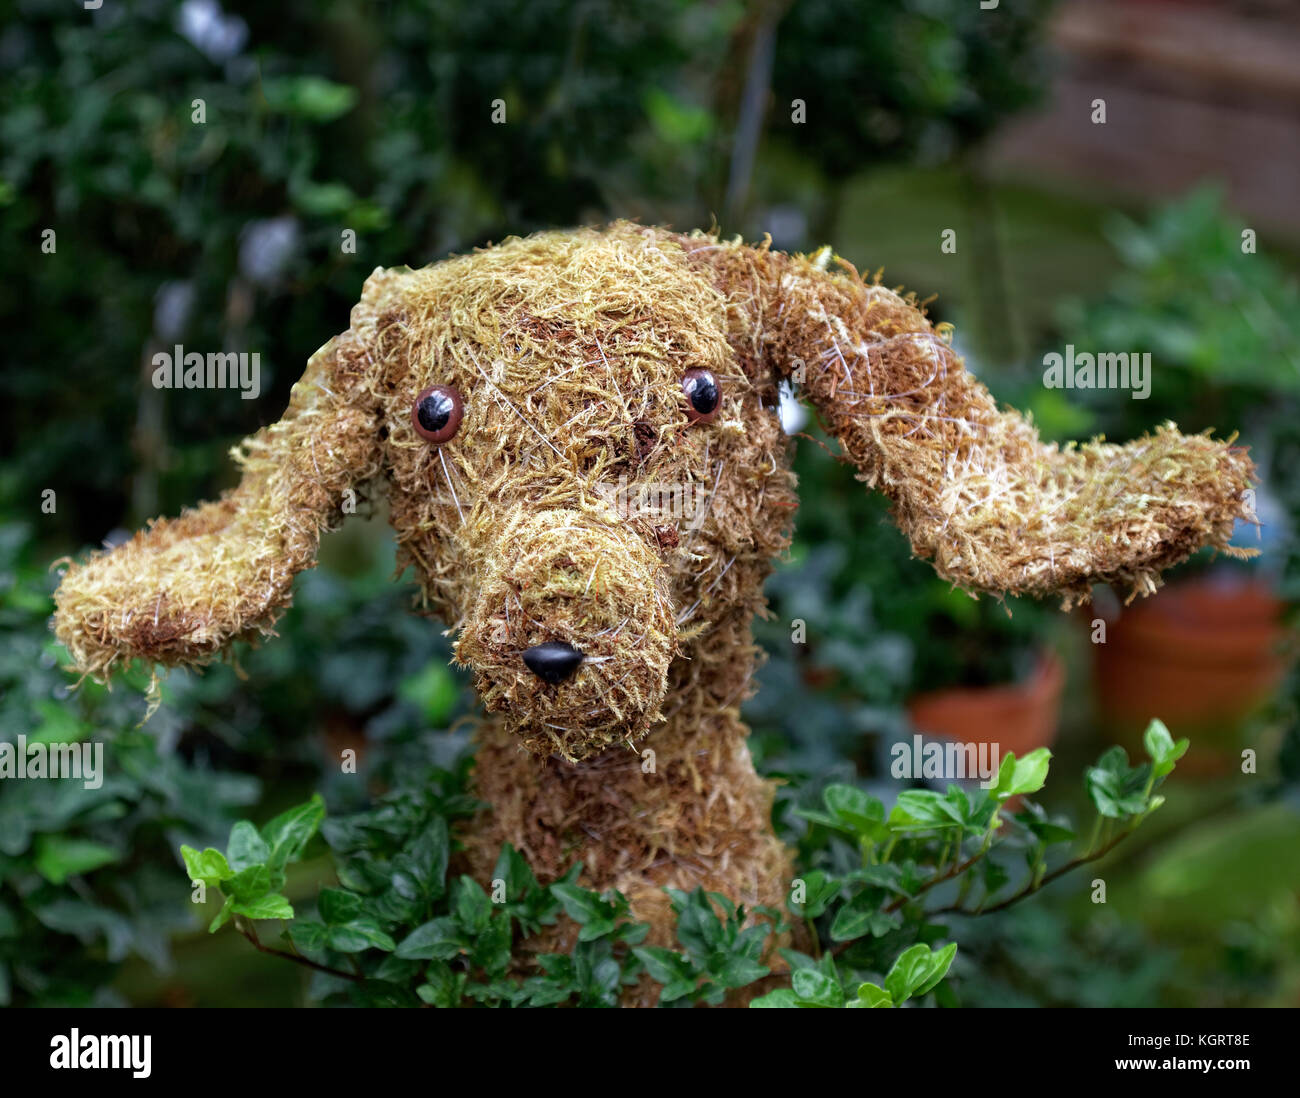 Topiary Dog Imágenes De Stock & Topiary Dog Fotos De Stock - Alamy